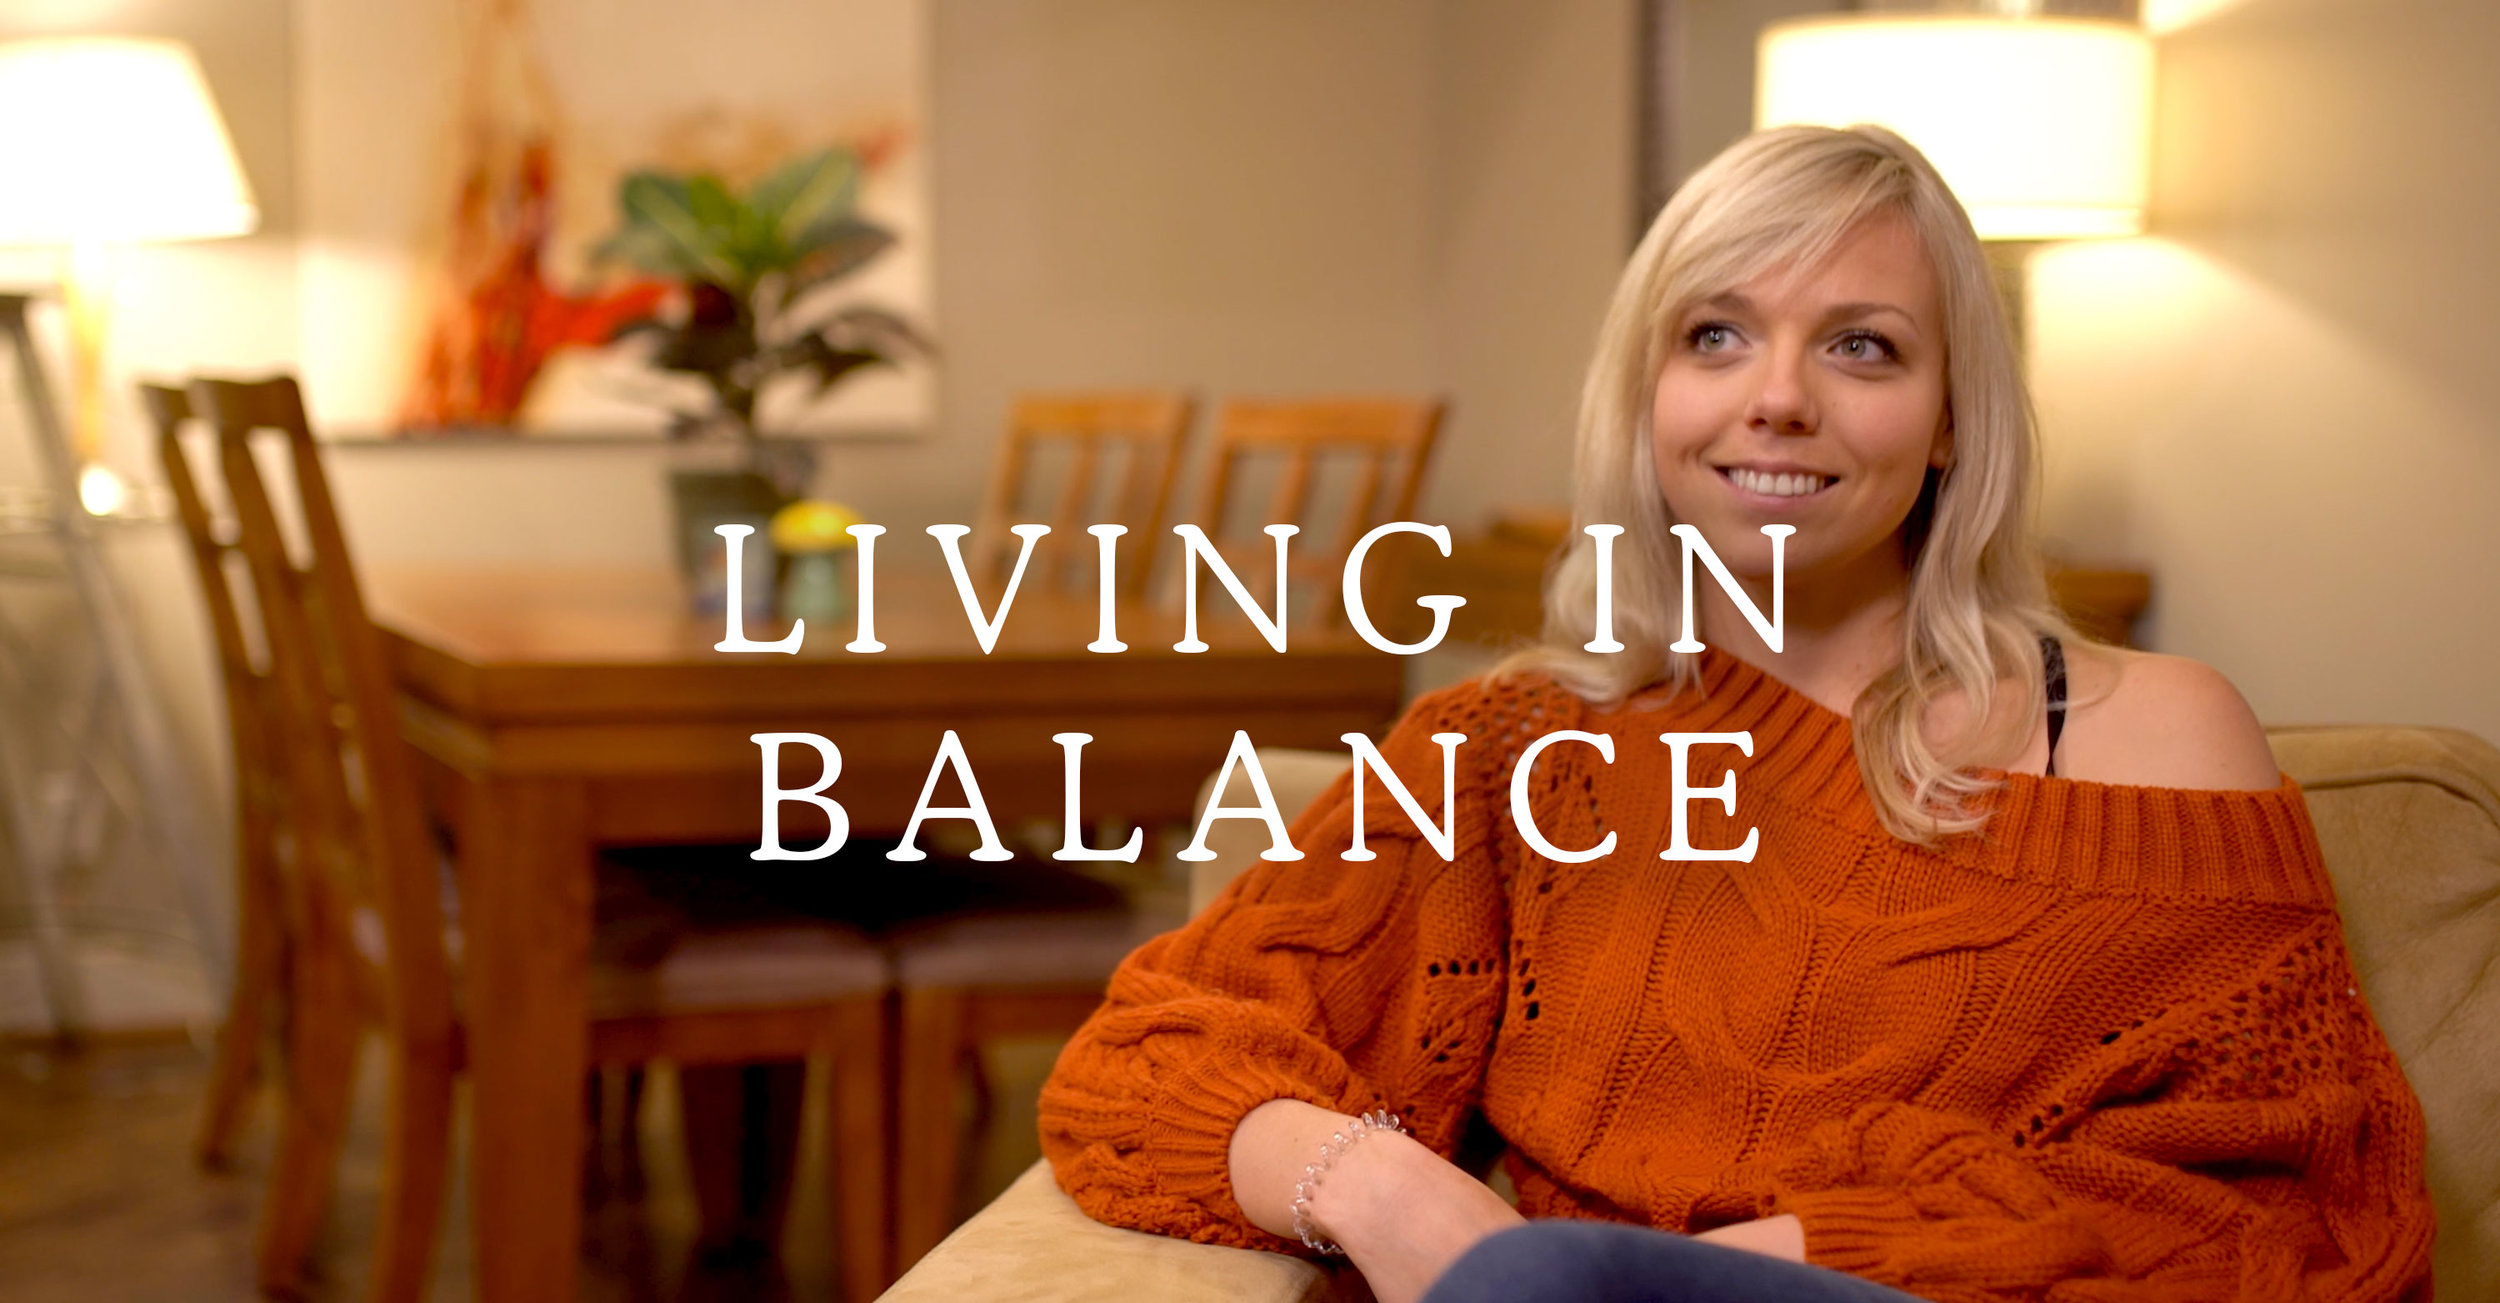 Living in Balance Title Card